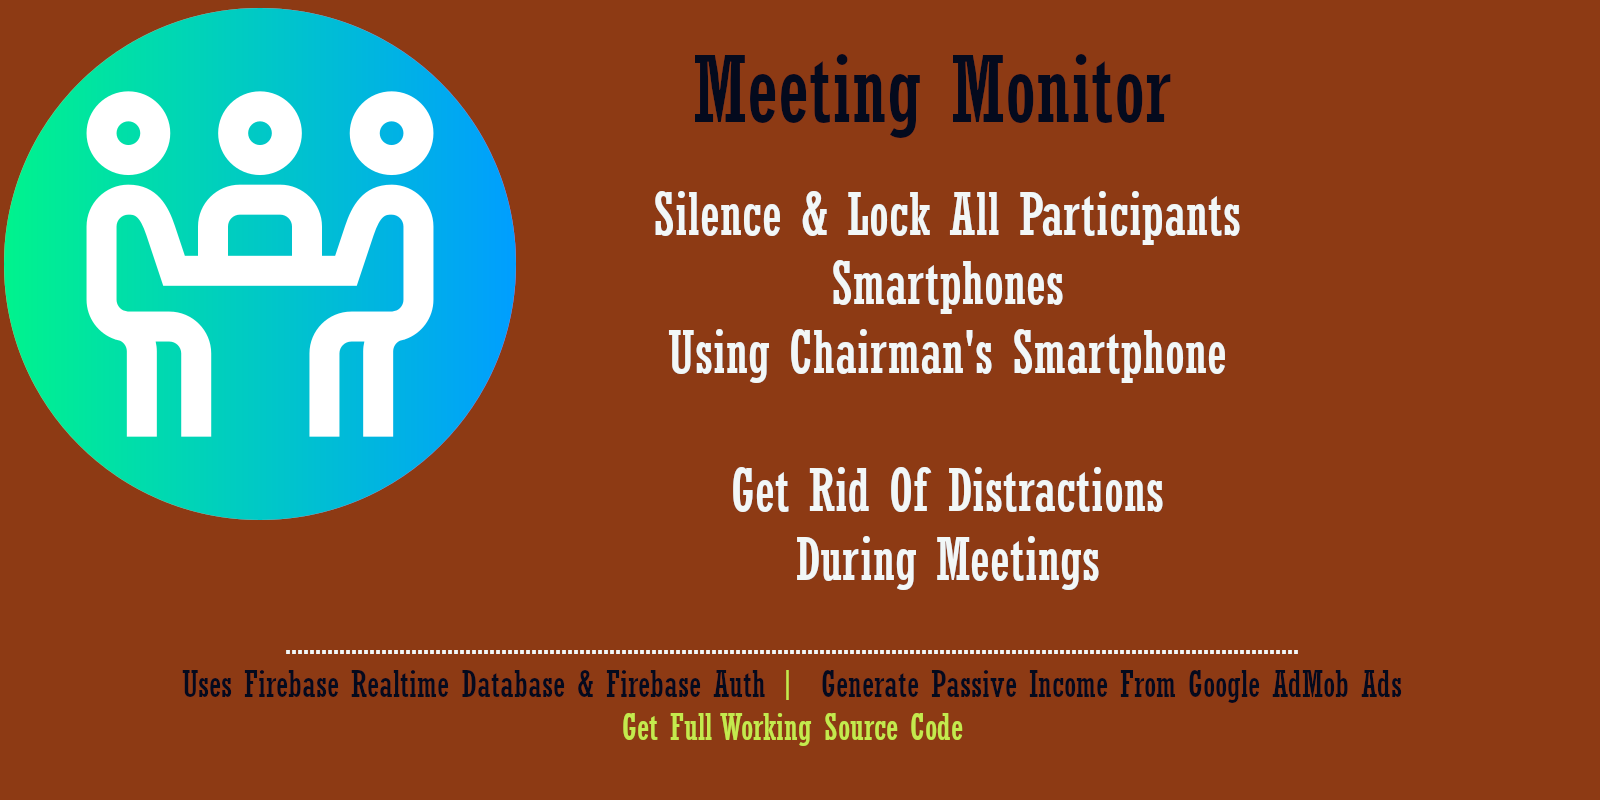 Meeting Monitor-Get Rid Of Distractions During Meetings